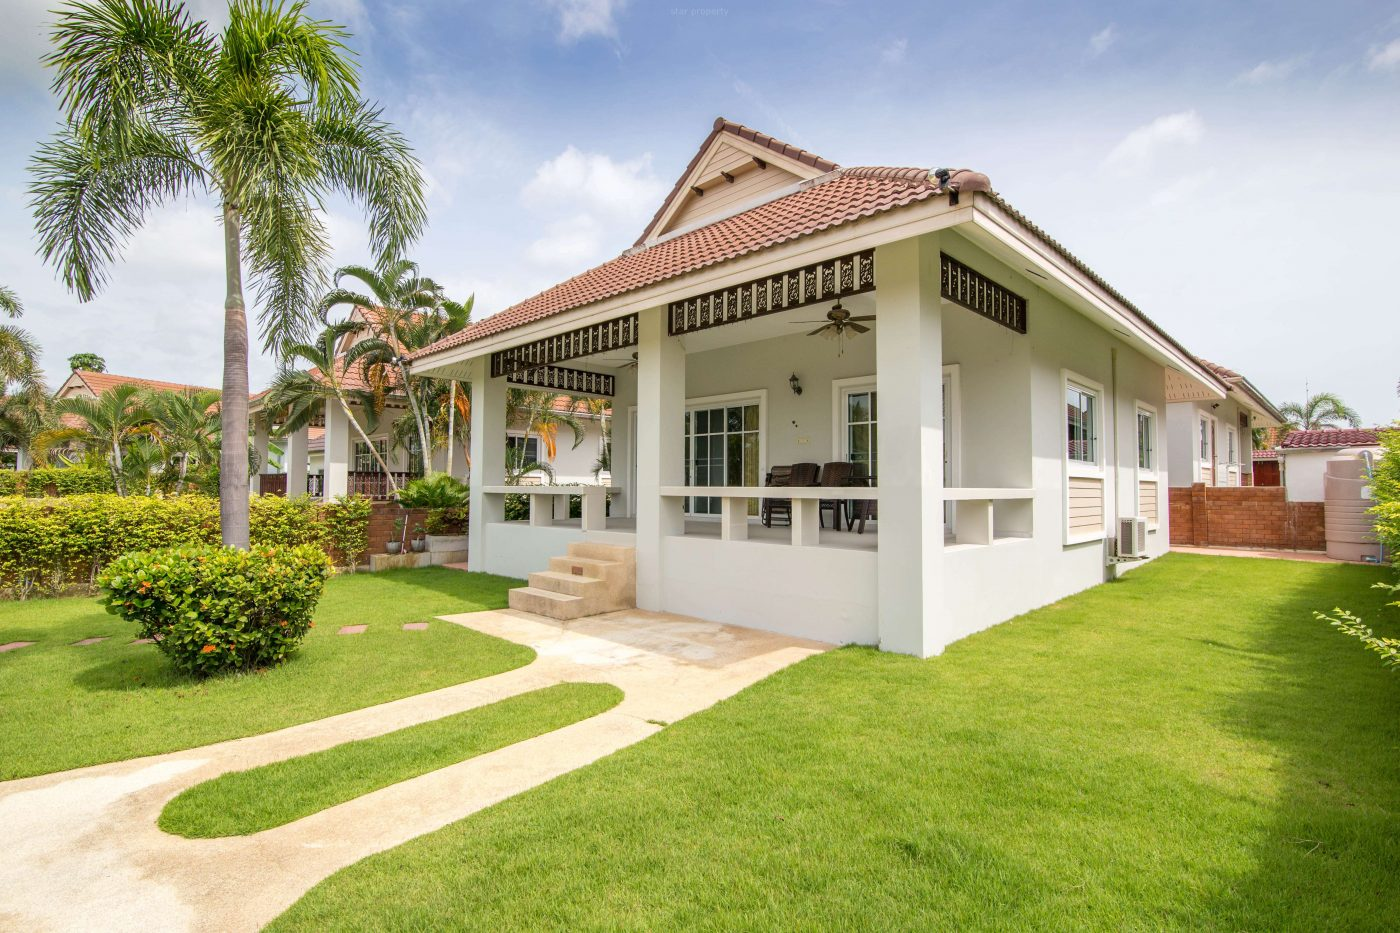 2 Bed Villa for Rent at Smart House Village